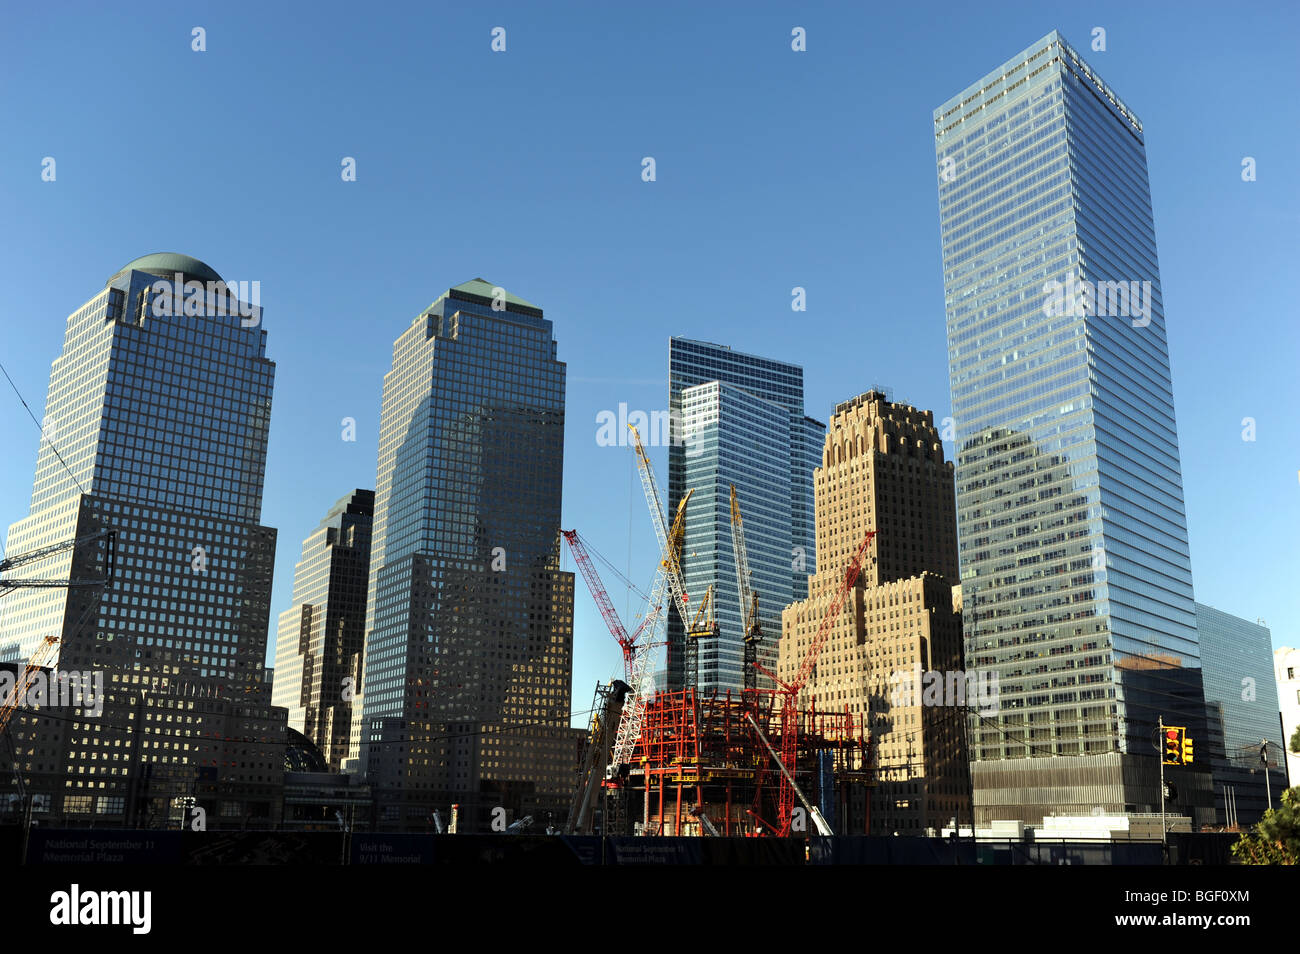 the terrorist attack on the world twin towers On september 11, 2001 , terrorists hijacked 4 airplanes and crashed them into the two towers of the world trade centre in new york and the pentagon in washington the.